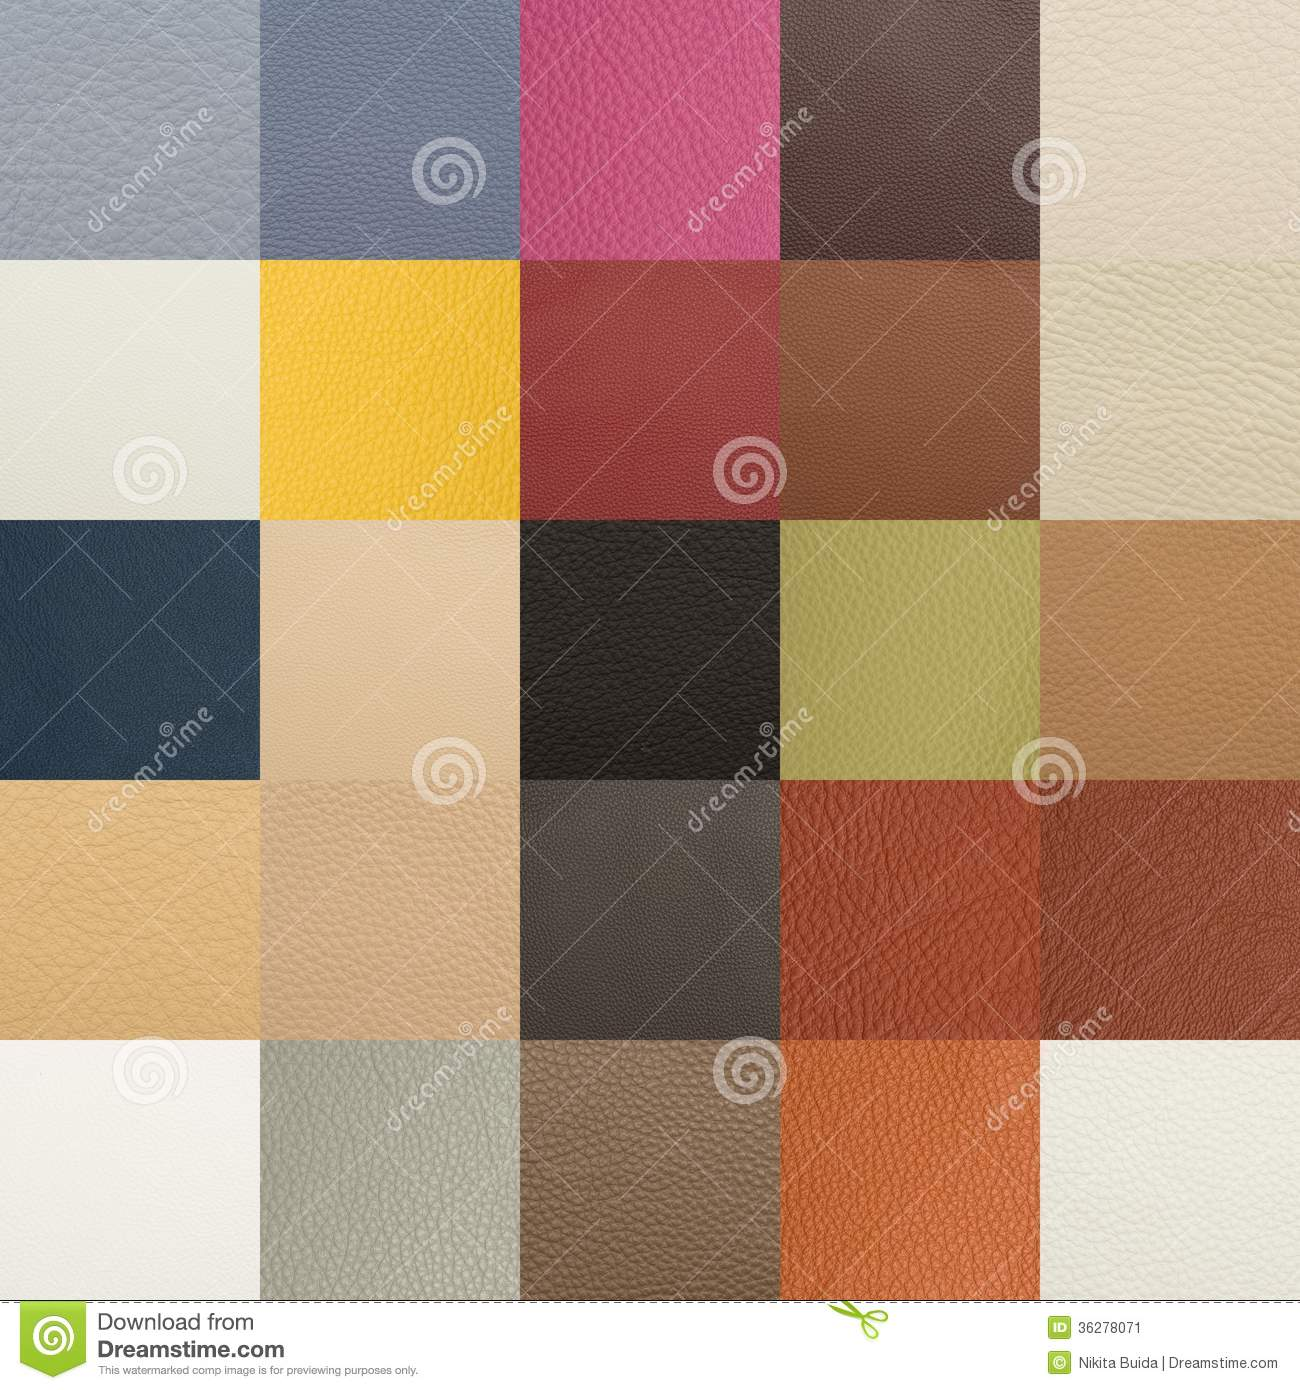 Choosing Paint Color From Tone Samples Stock Image